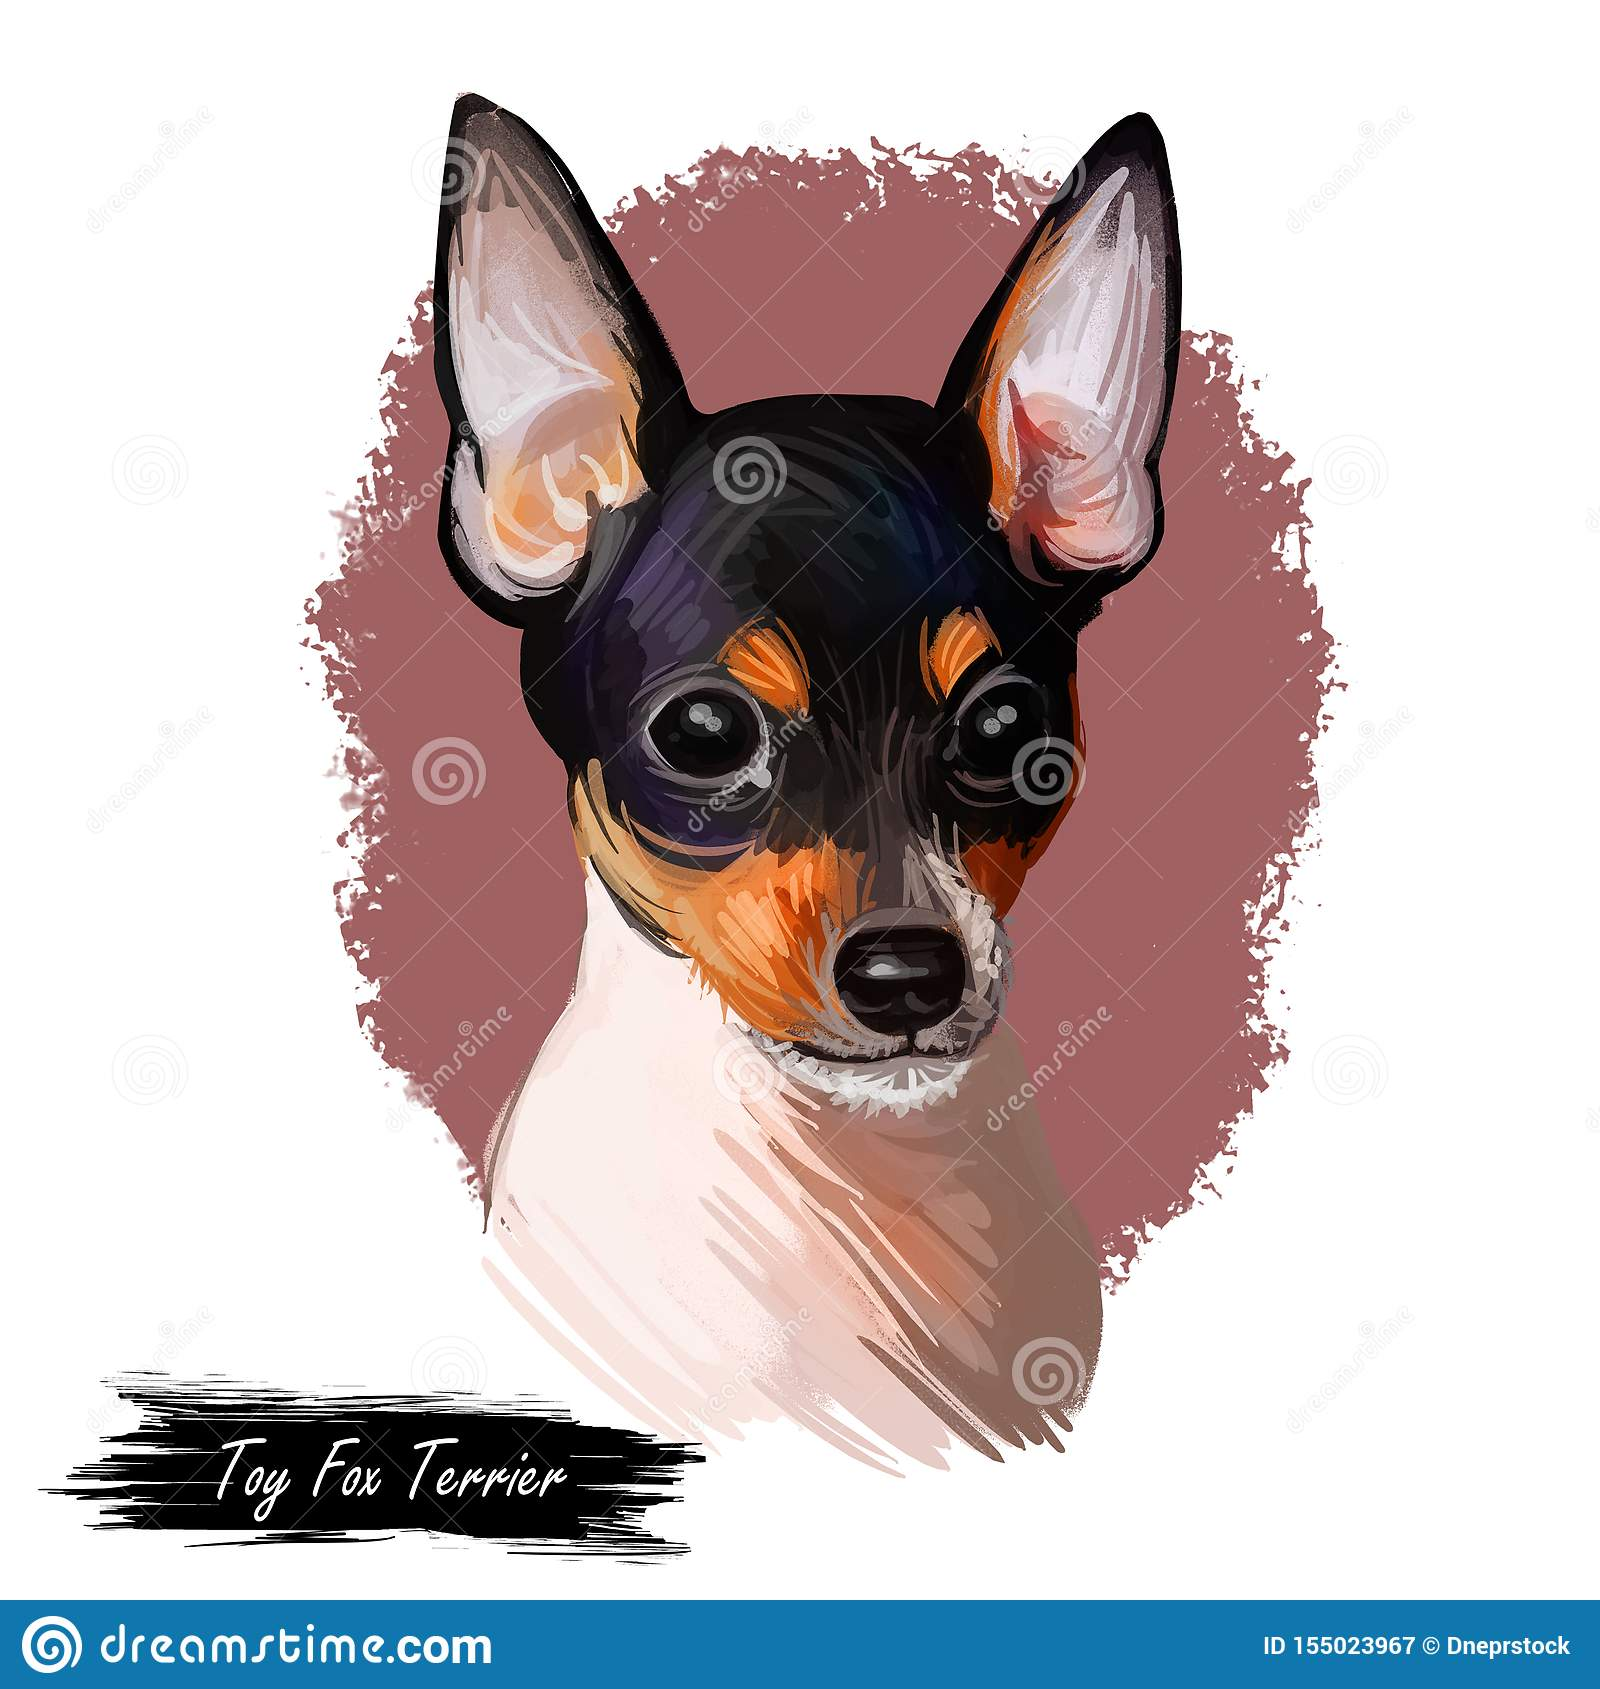 Toy Fox Terrier Dog Breed Portrait Isolated On White Digital Art Illustration Animal Watercolor Drawing Of Hand Drawn Doggy For Stock Illustration Illustration Of Colorful Handsome 155023967